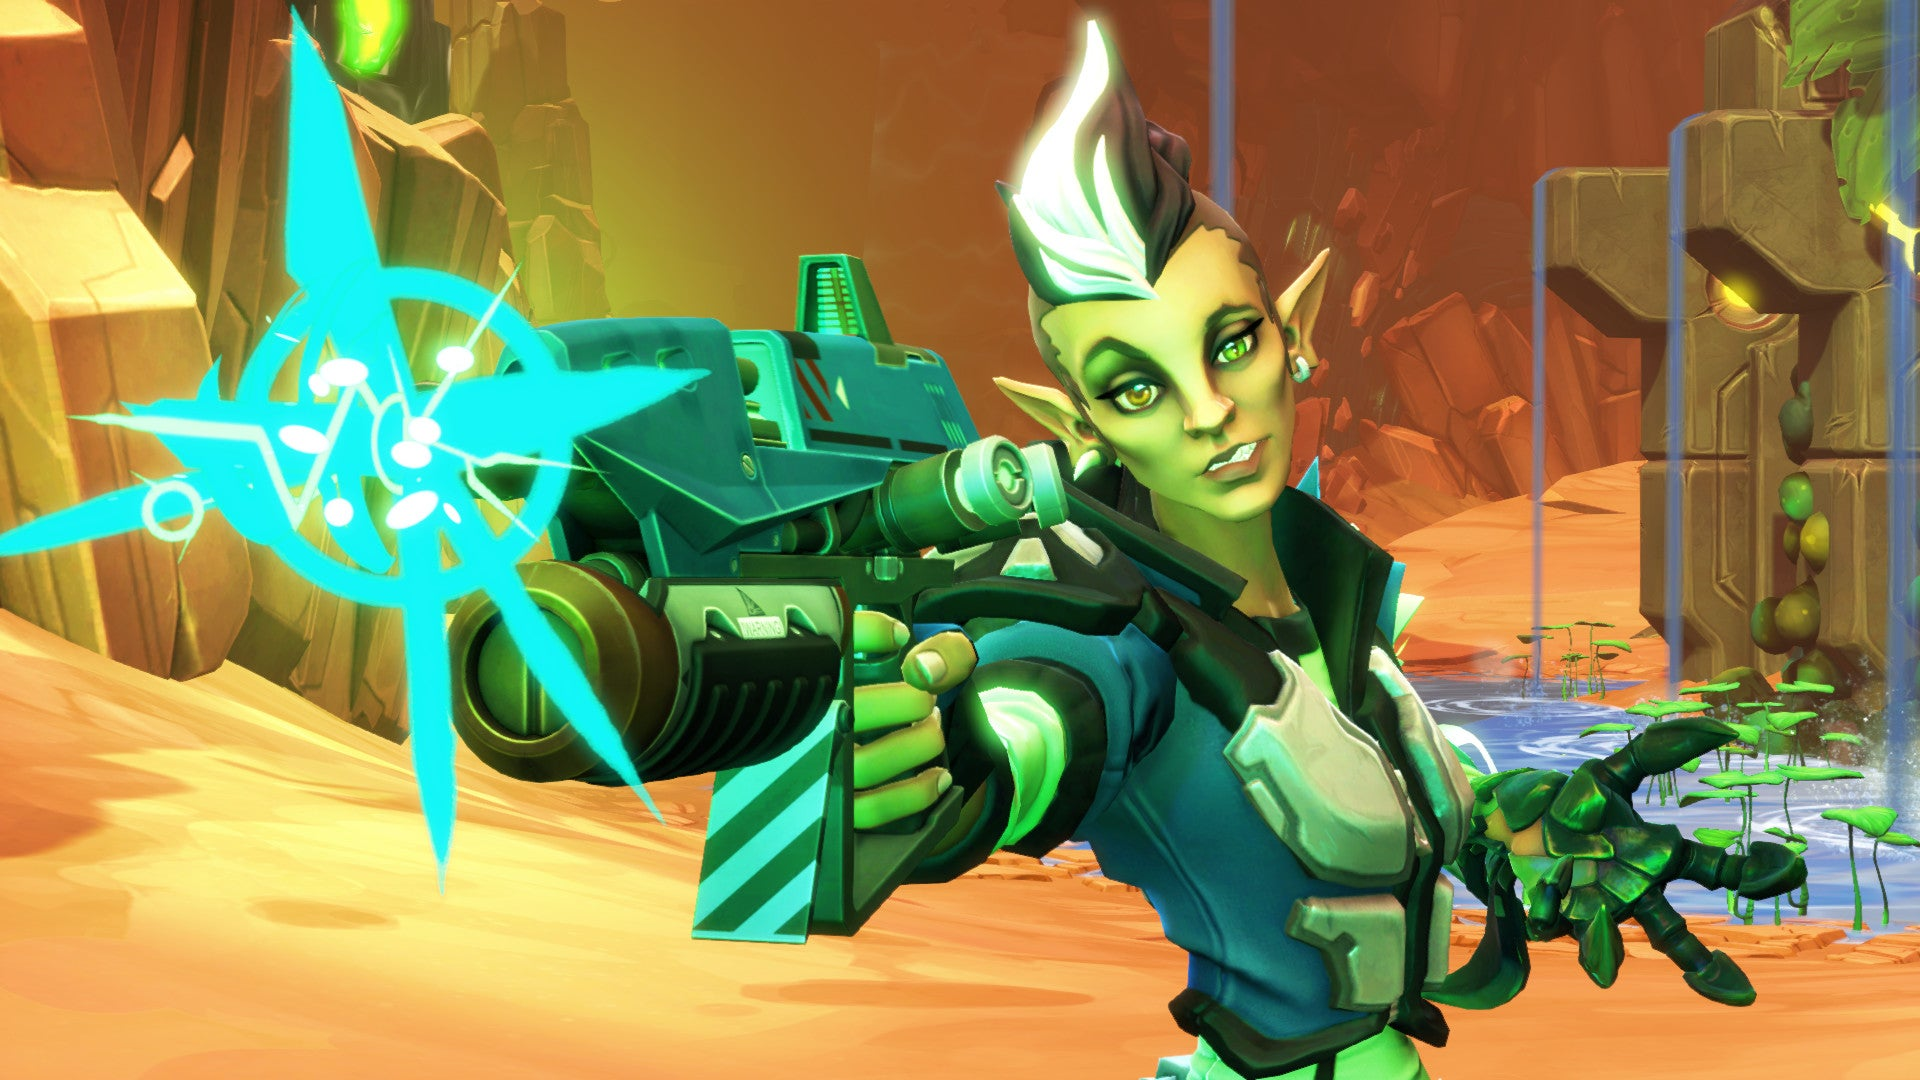 2k battleborn editors-picks gearbox